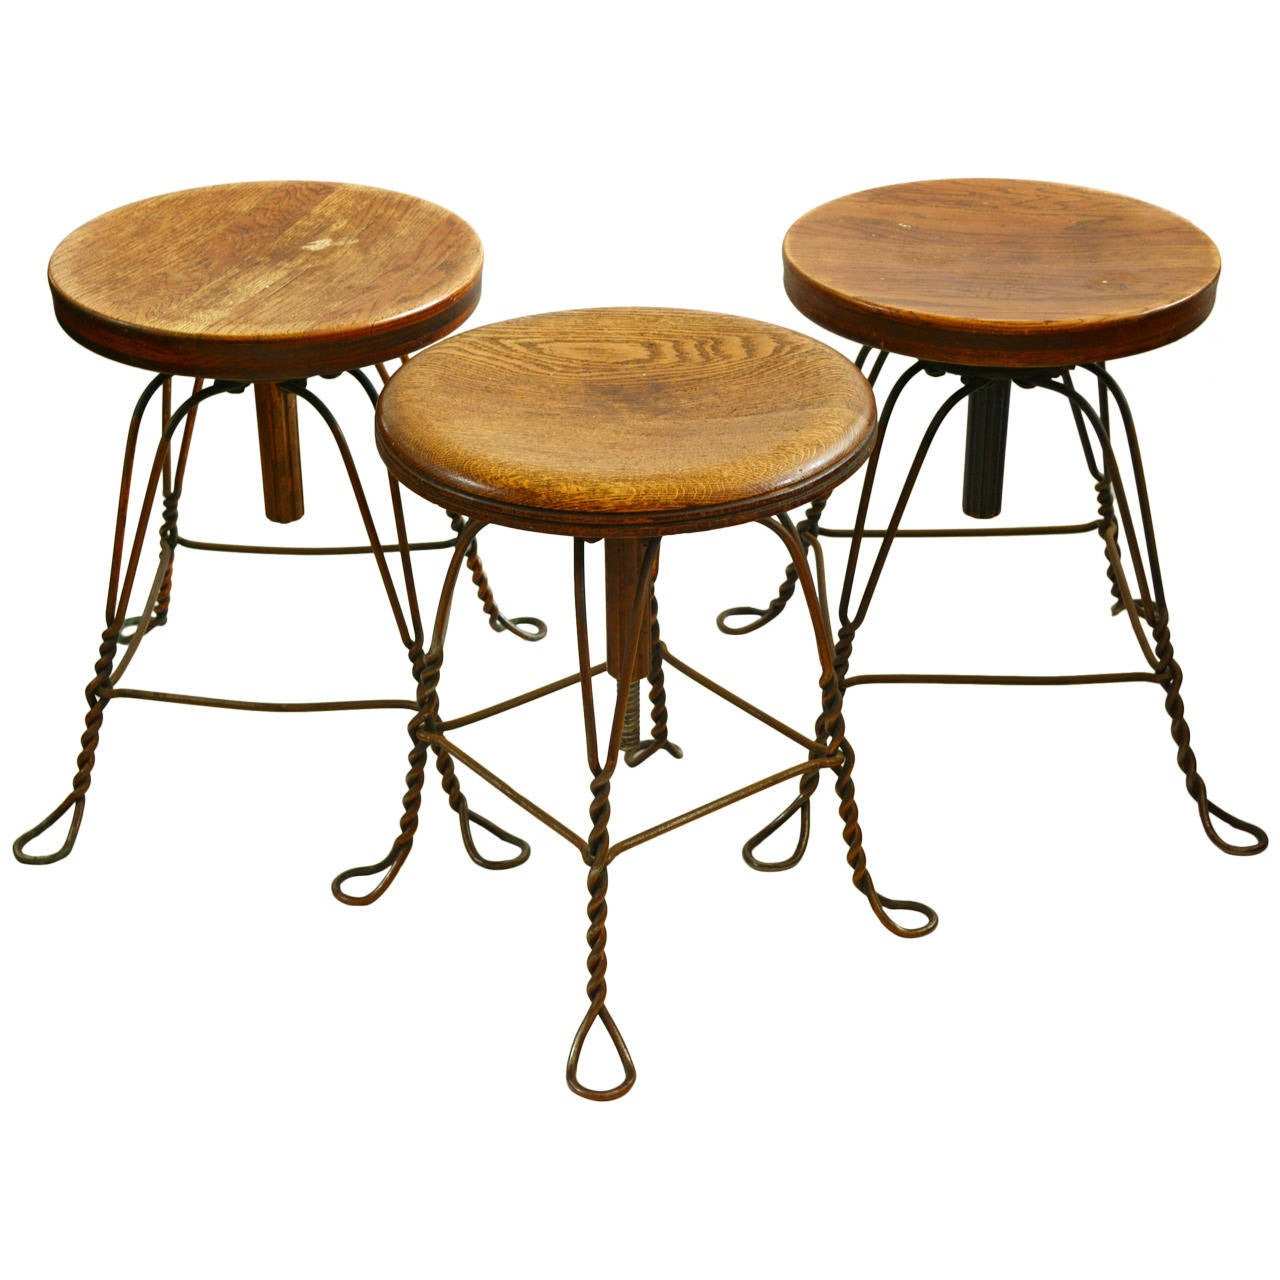 Industrial Twisted Steel Wire Stools At 1stdibs